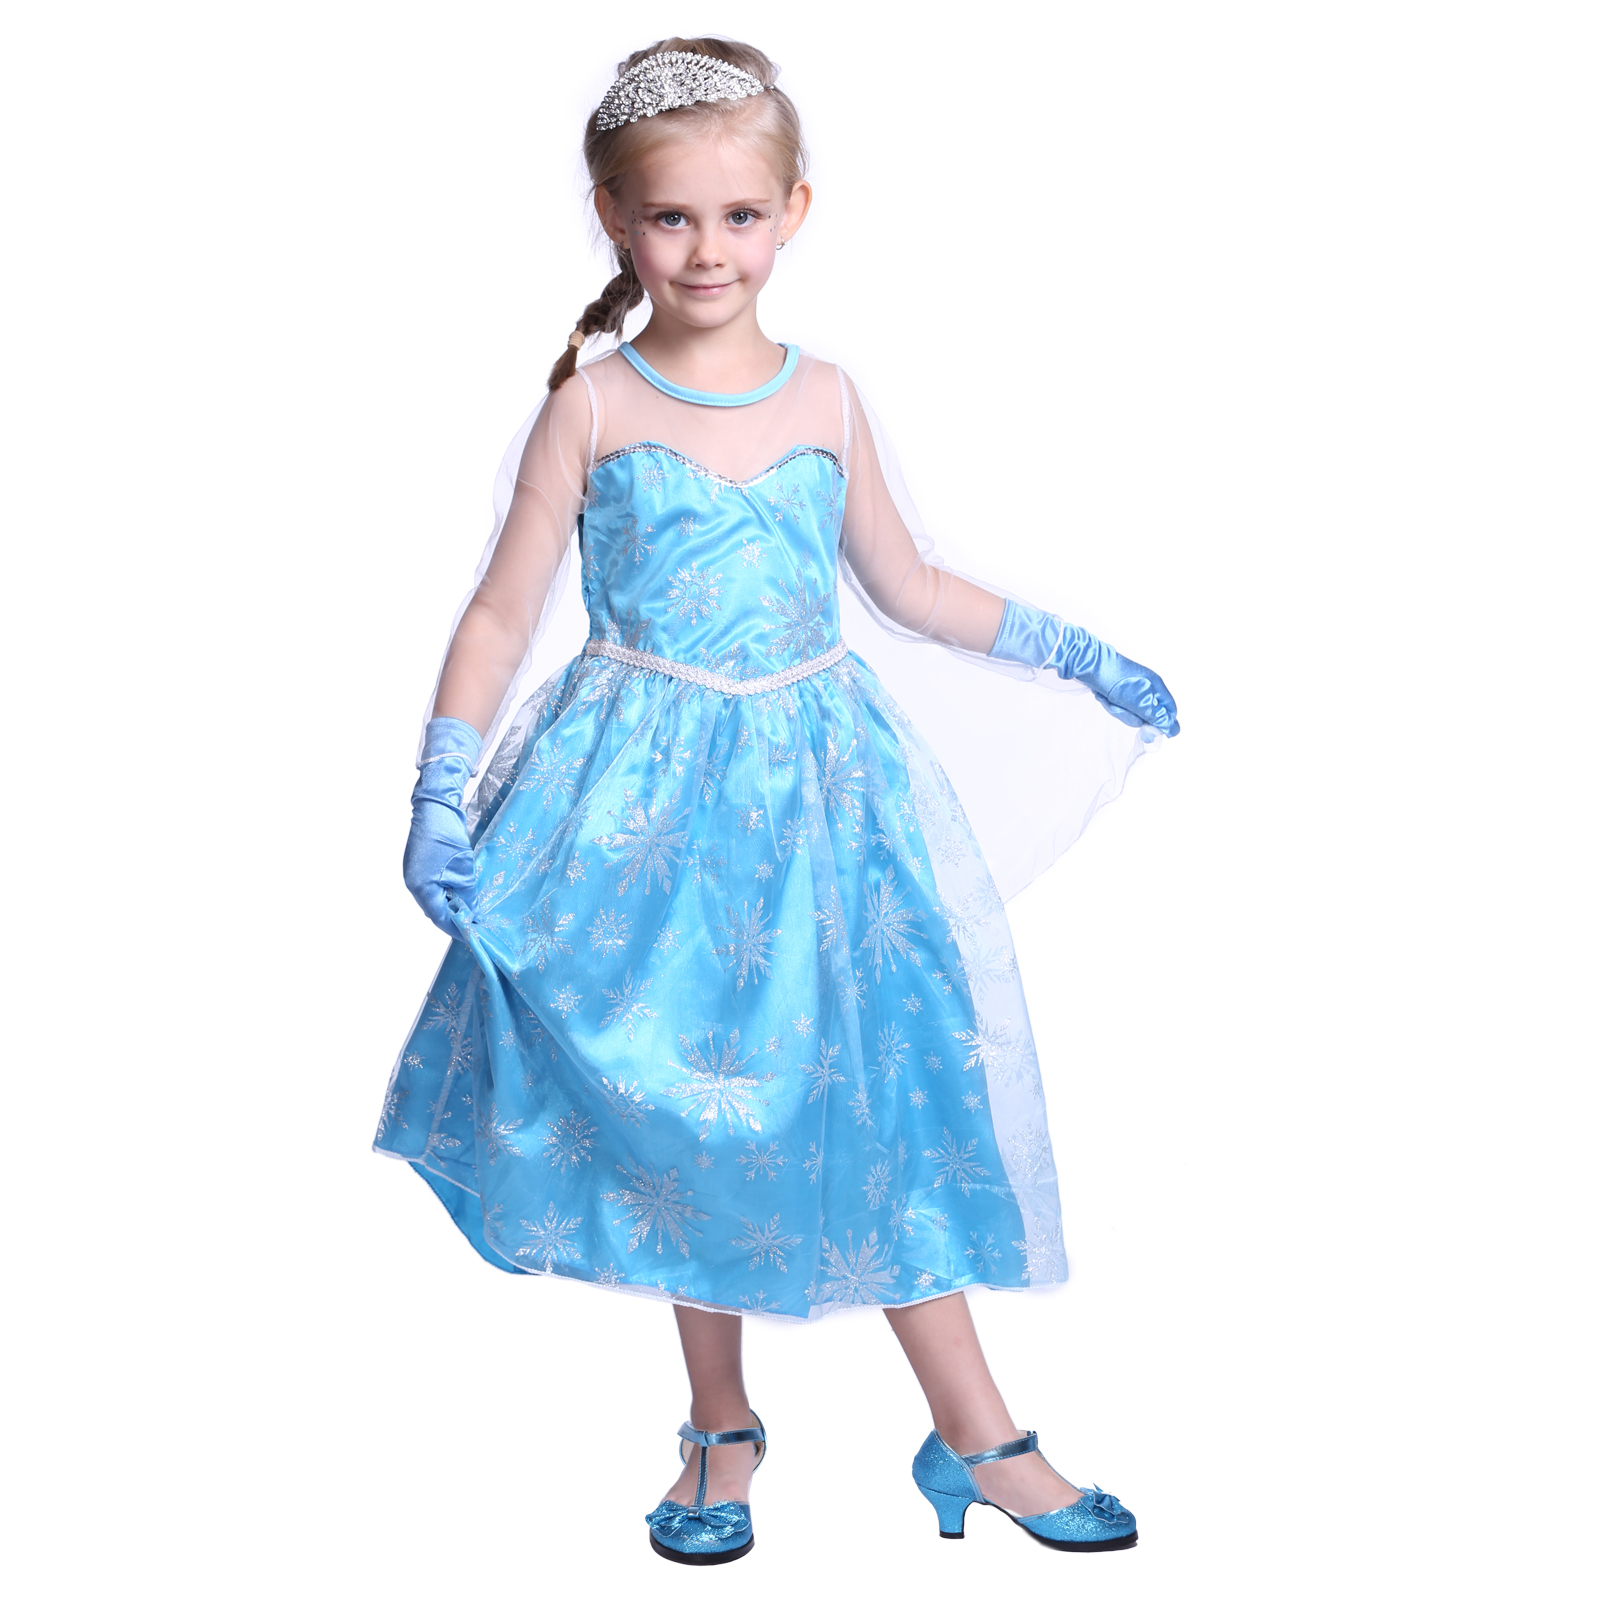 Find great deals on eBay for elsa costumes. Shop with confidence.